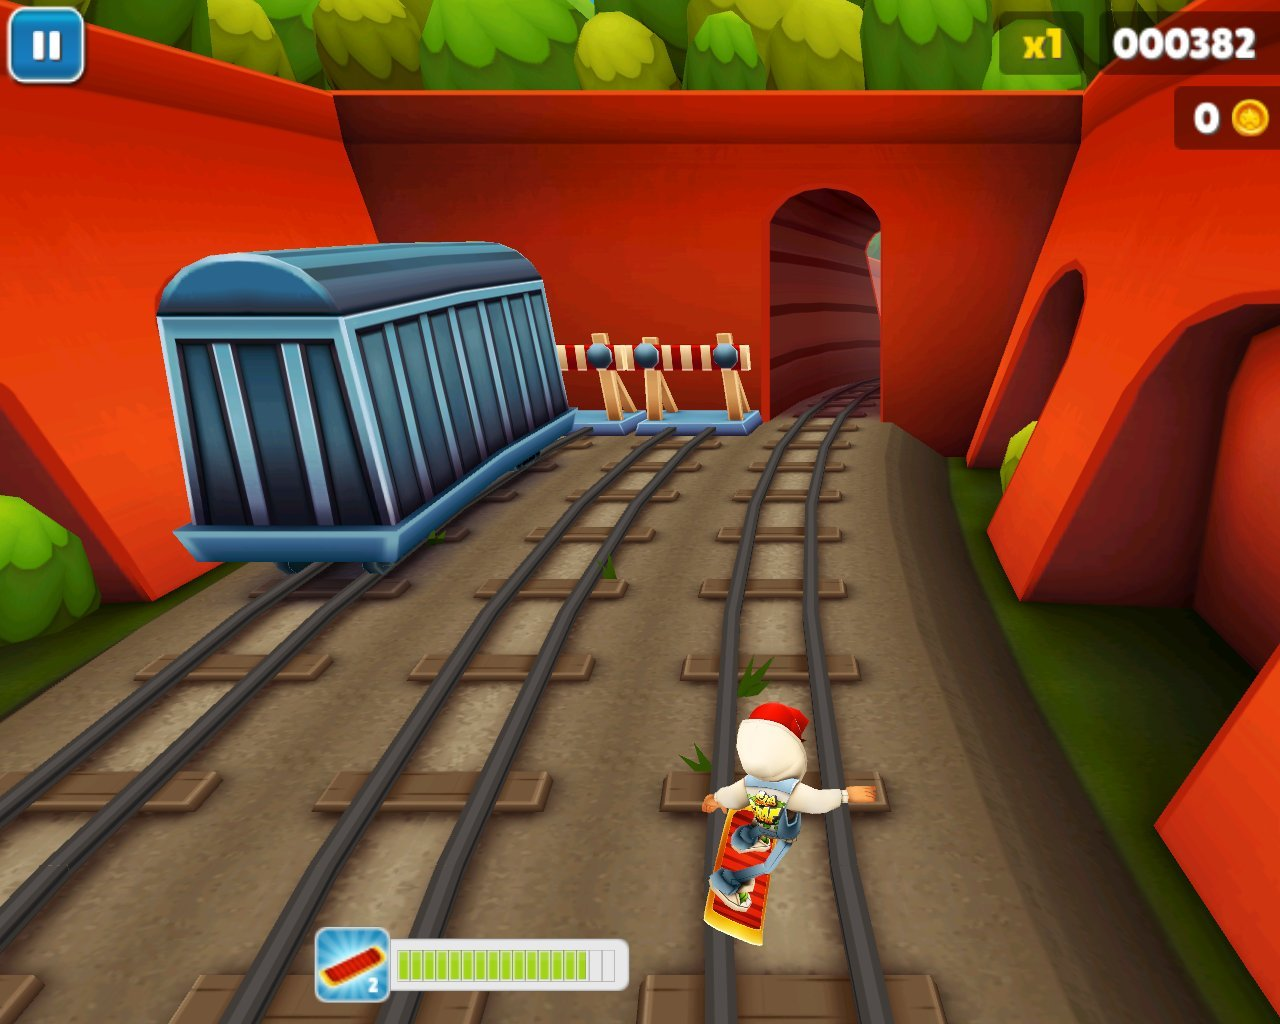 TELECHARGER SUBWAY SURFERS SUR PC GRATUIT